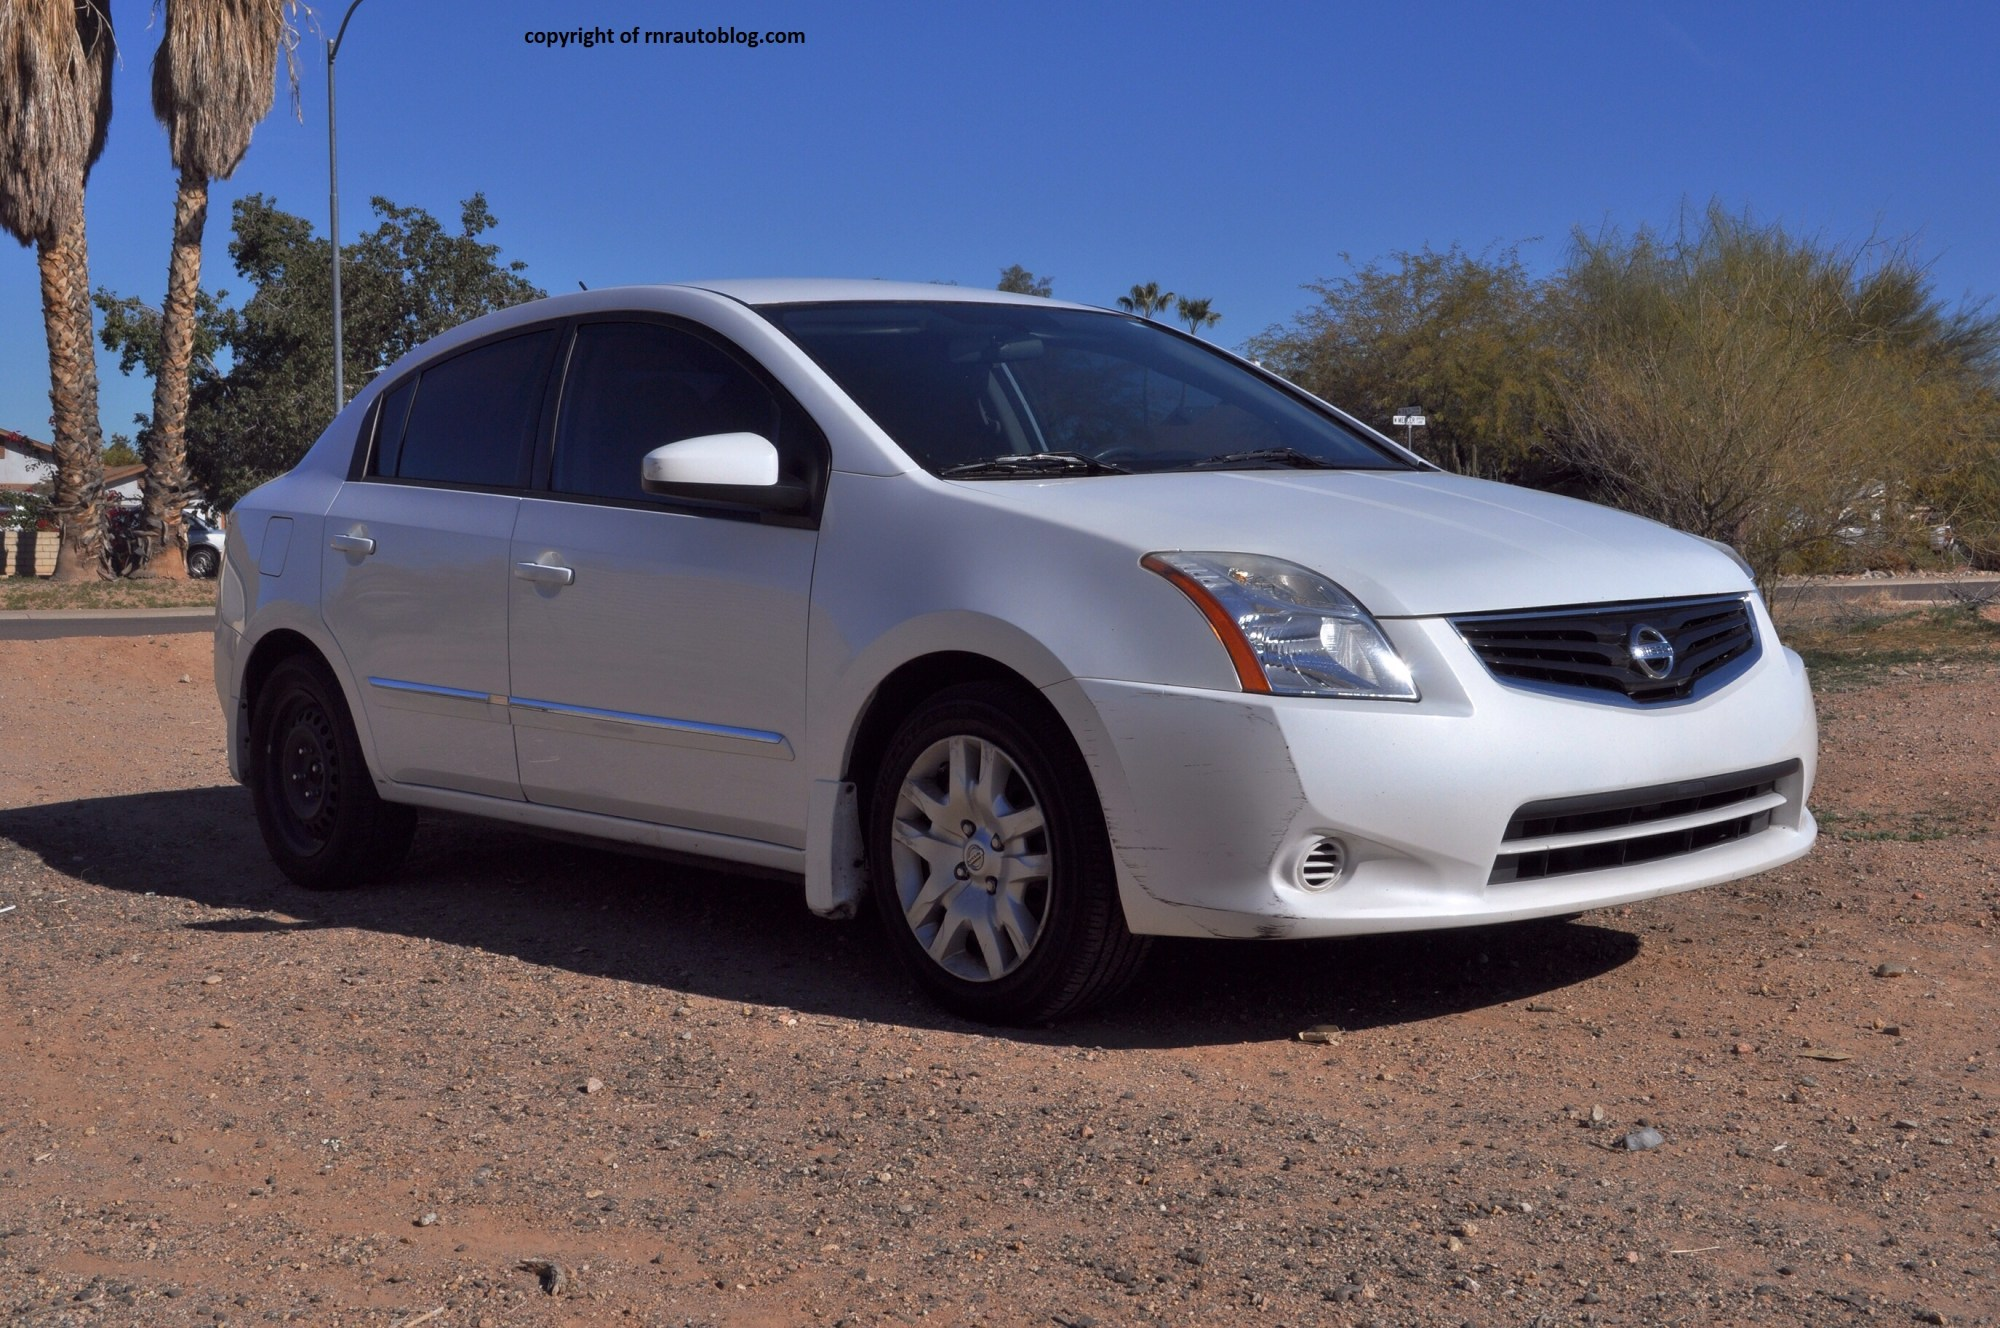 hight resolution of the sentra is a comfortable car and i can see why it sells in substantial numbers it is a nissan version of the toyota corolla